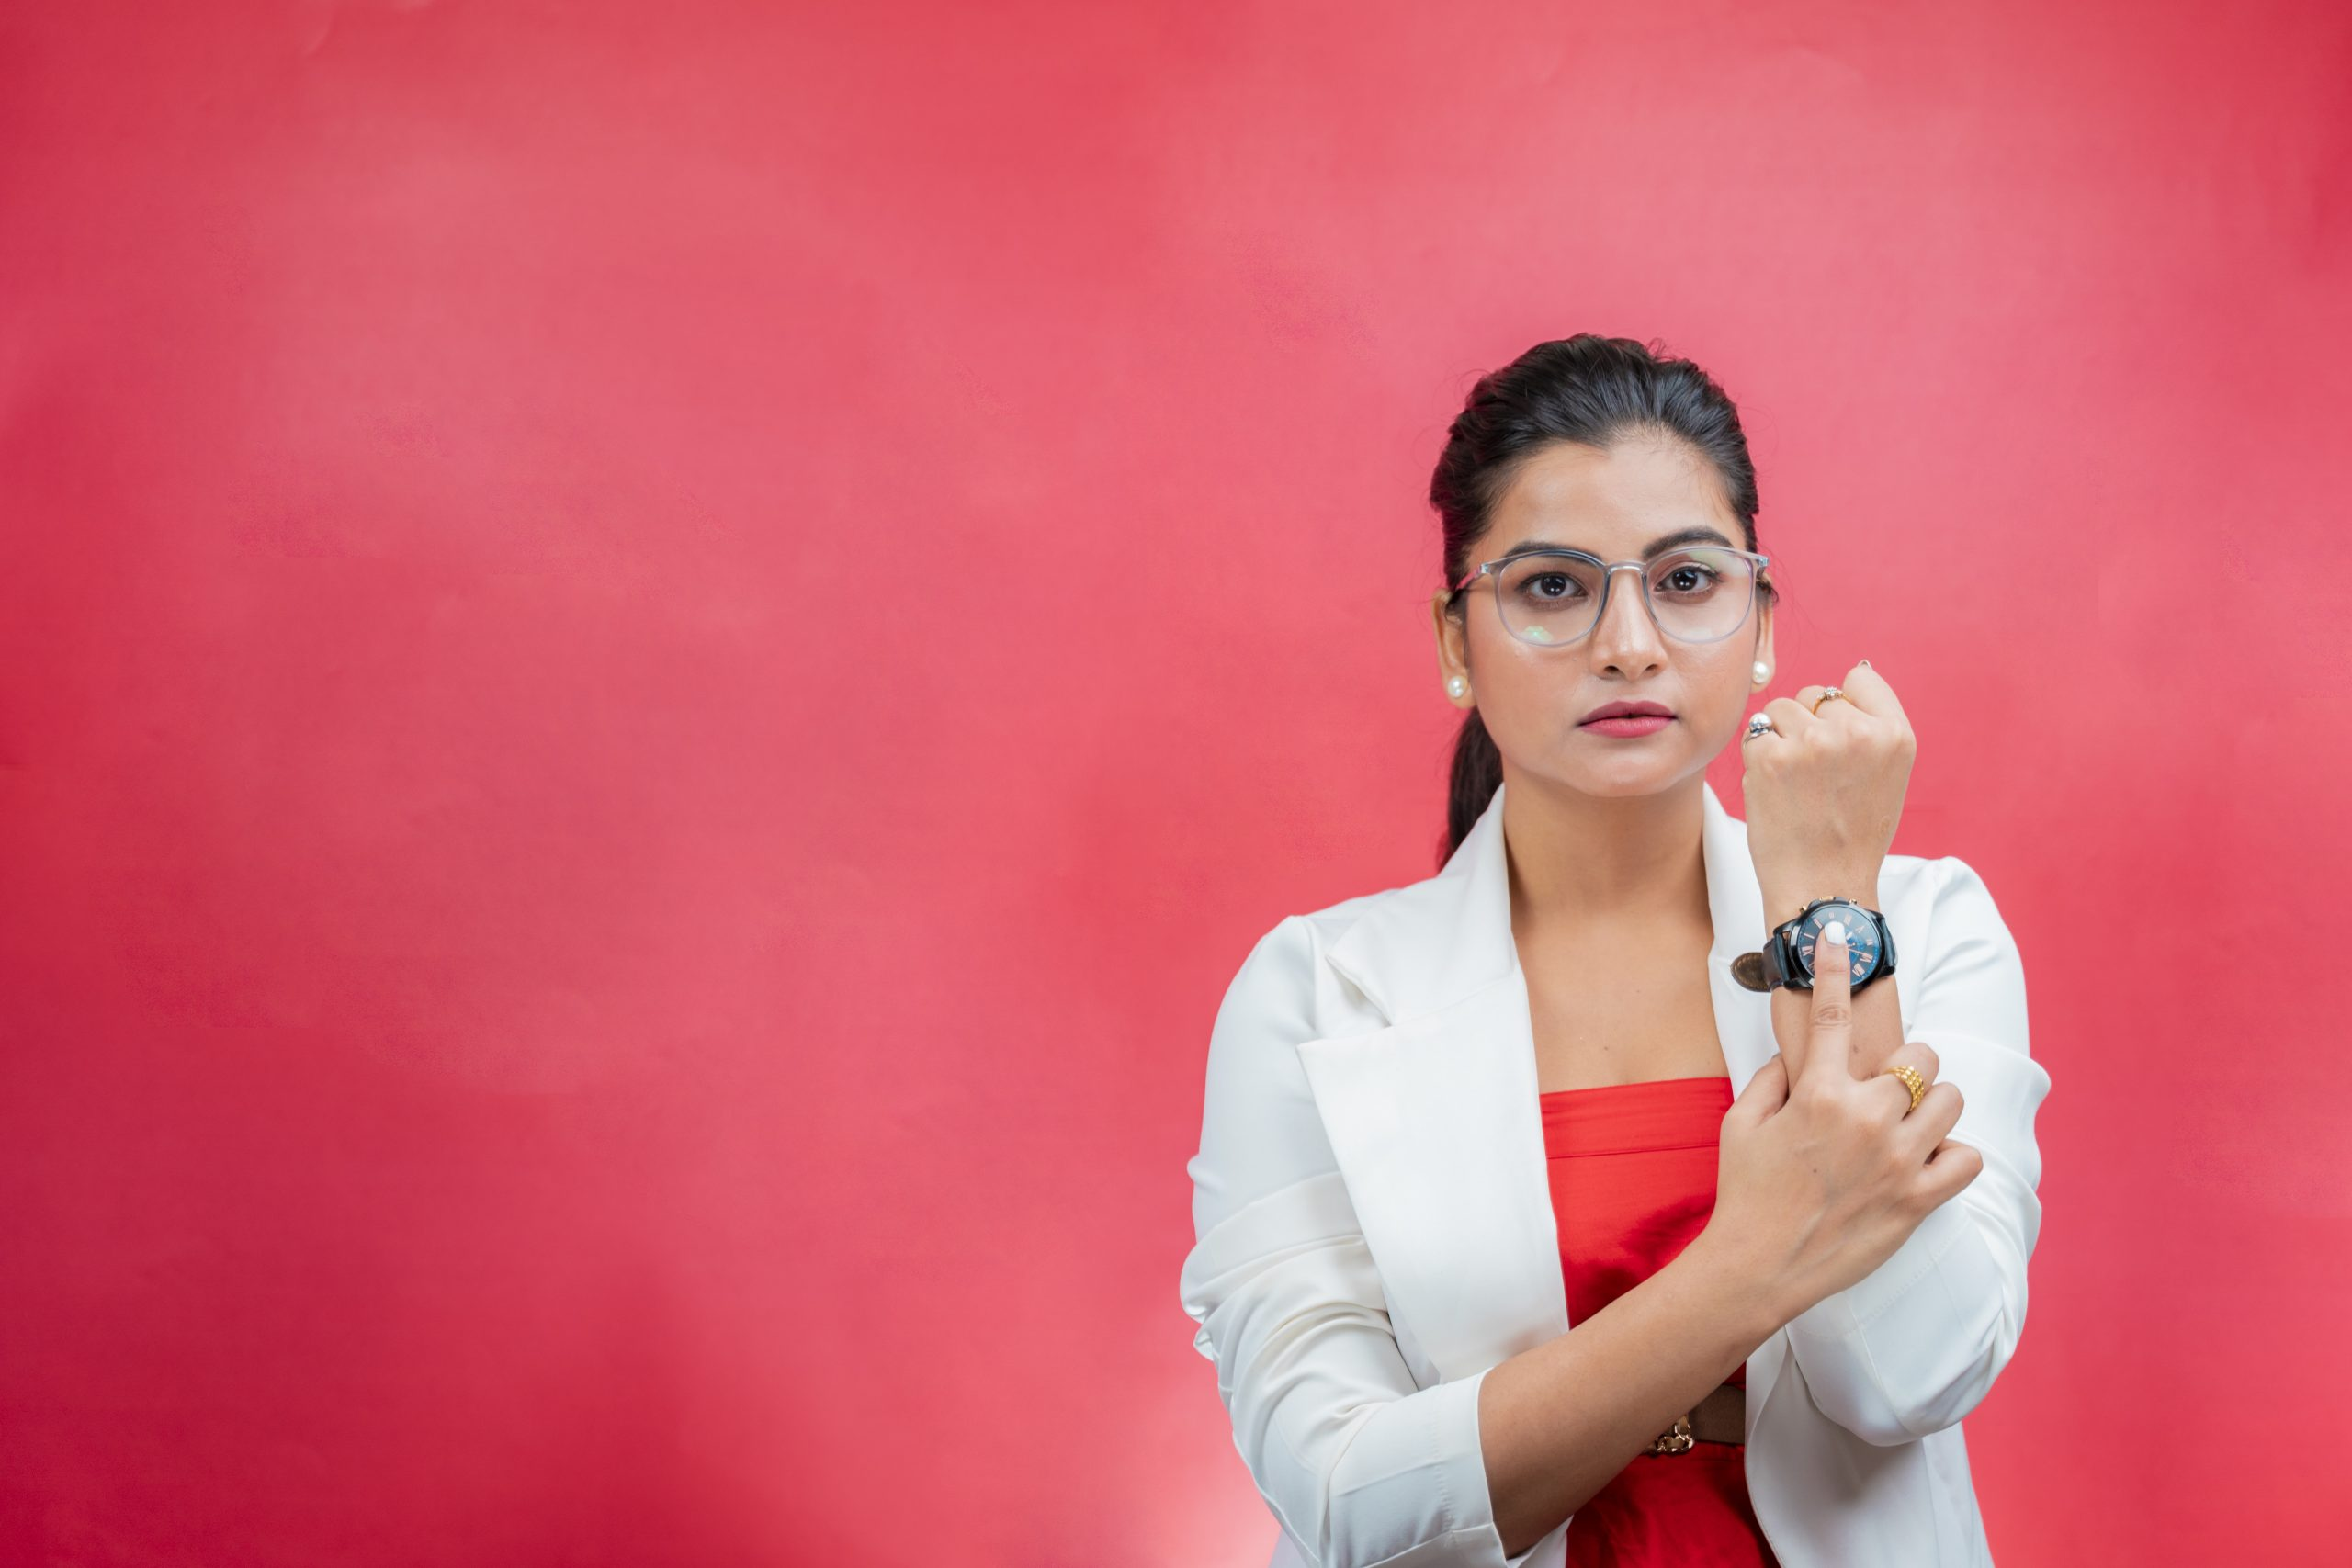 Confident woman showing wrist watch